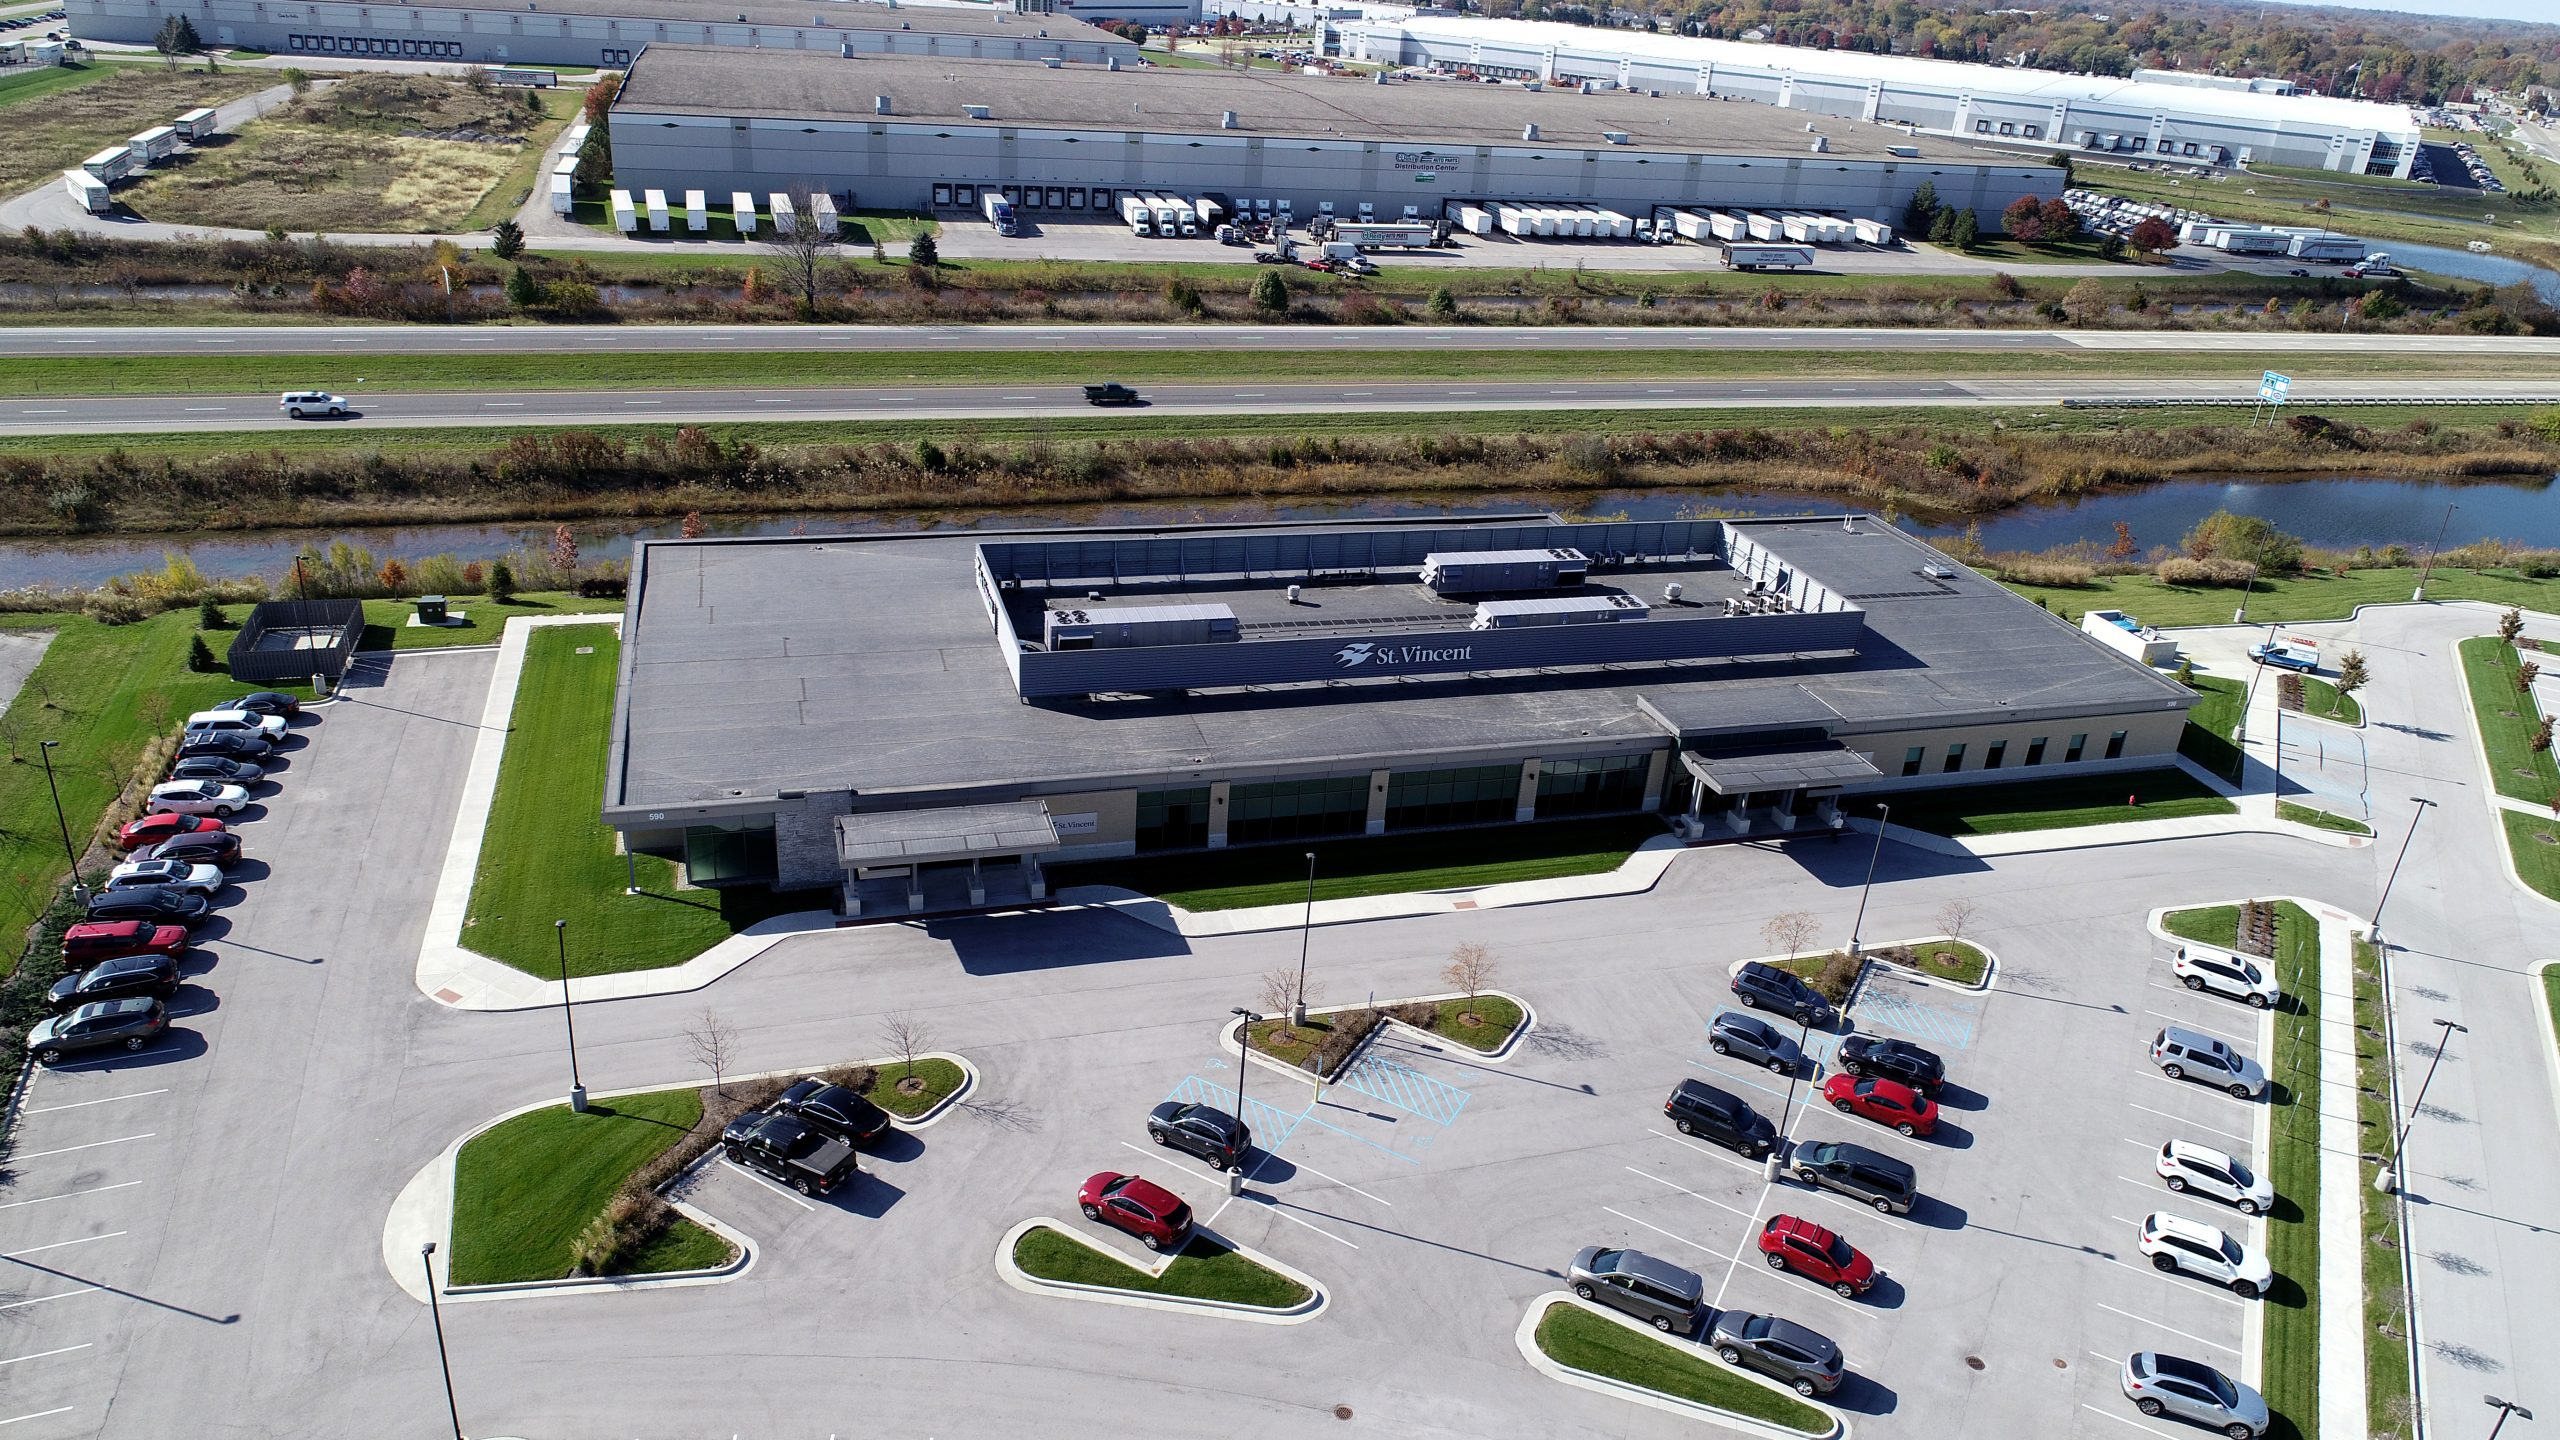 St. Vincent Brownsburg commercial roofing project by ce reeve roofing in indiana